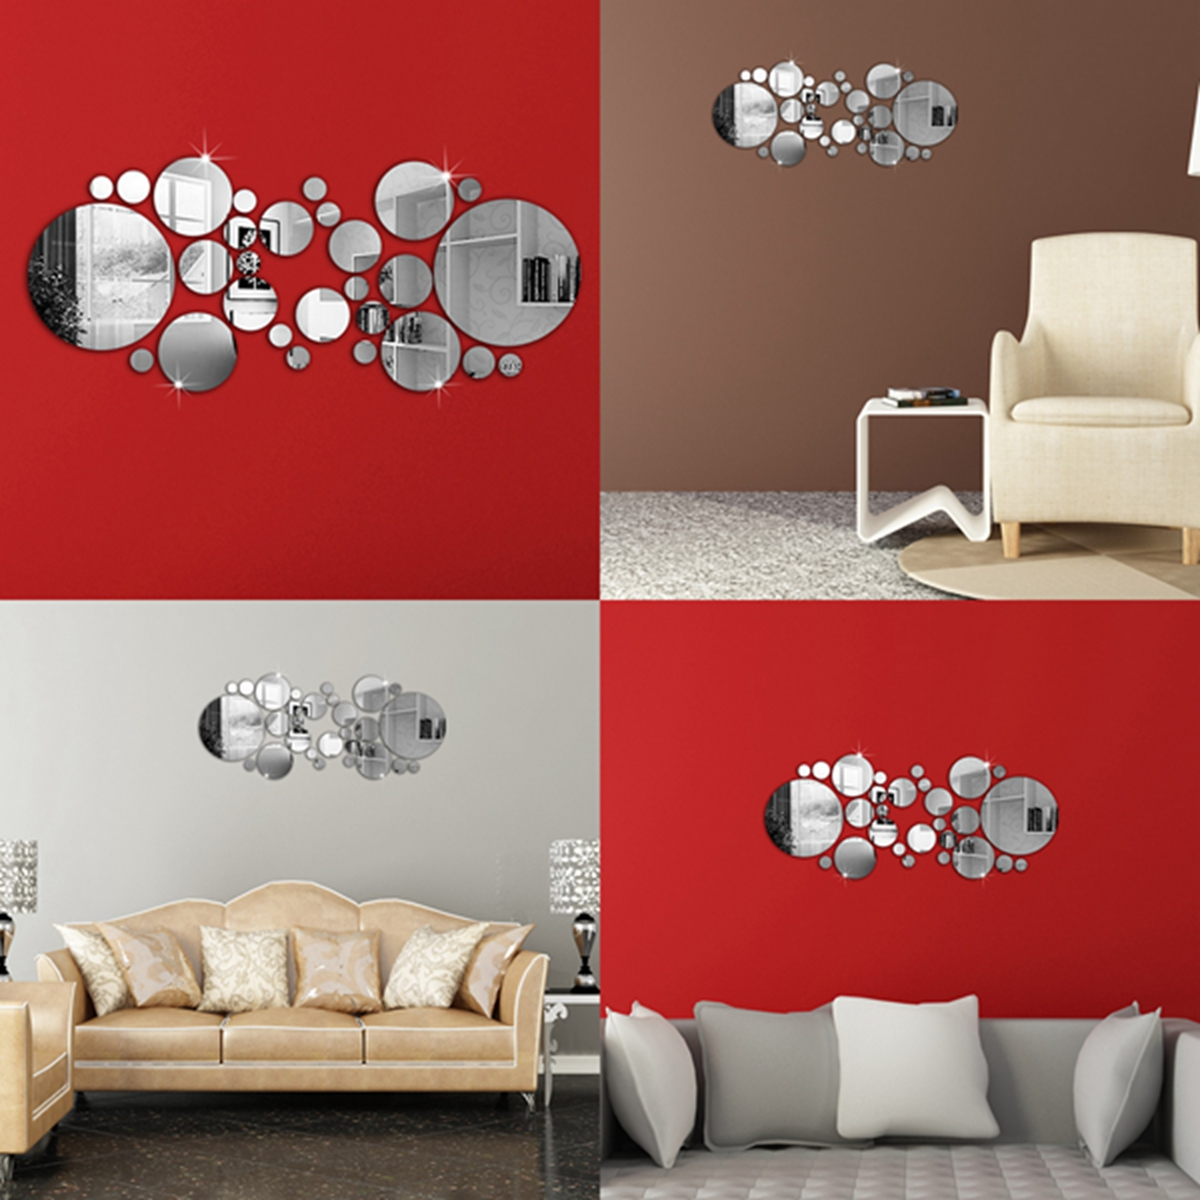 art wall stickers shenra com modern 3d mirror acrylic home room office diy decor art wall